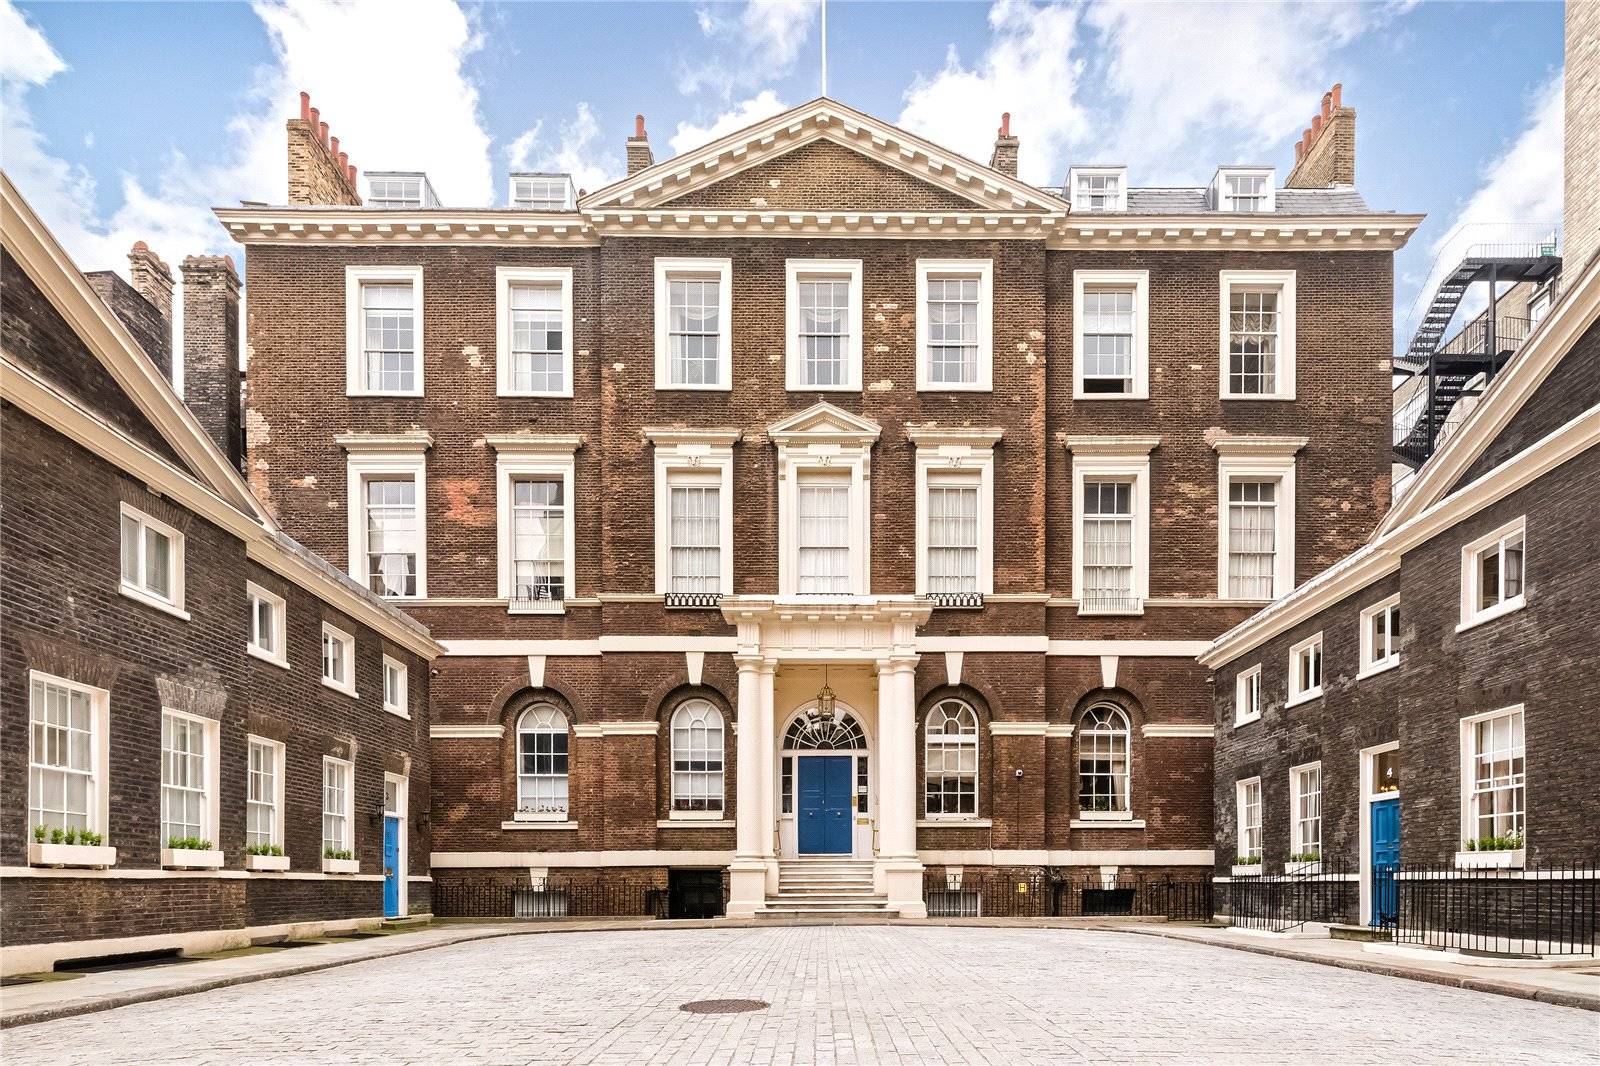 Apartment for Sale at Albany, Mayfair, London, W1J Albany, Mayfair, London, W1J